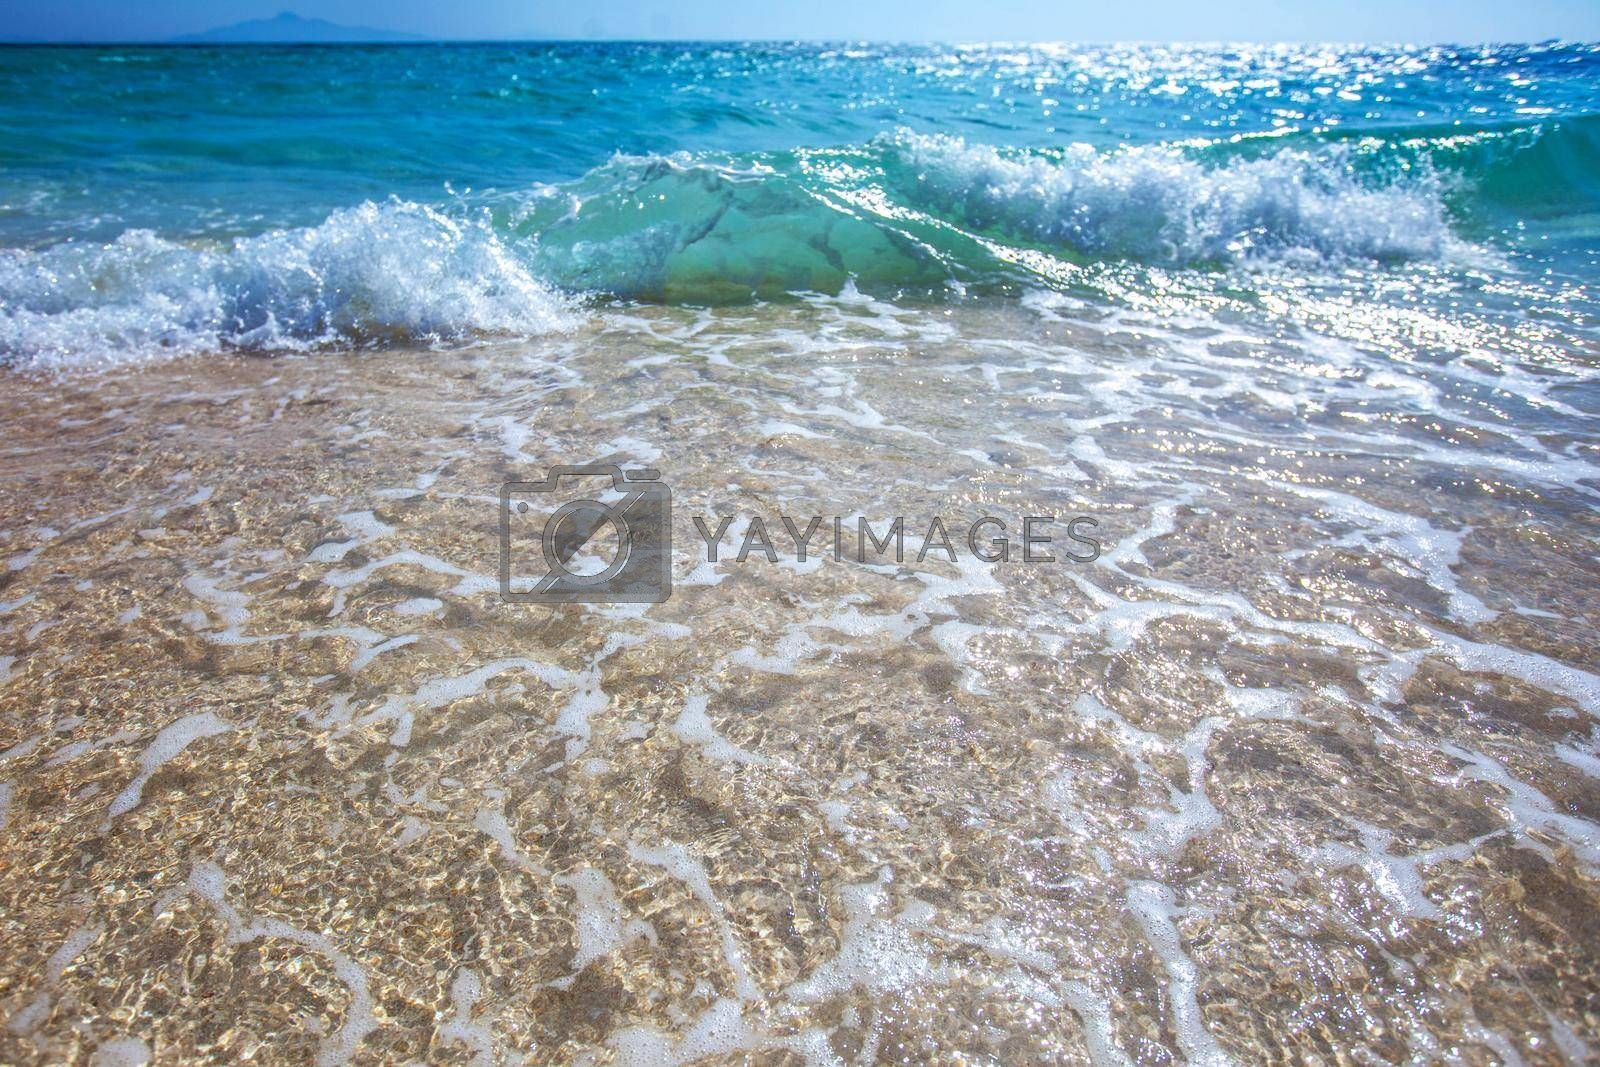 Royalty free image of Wave of the sea on the sand beach by Yellowj